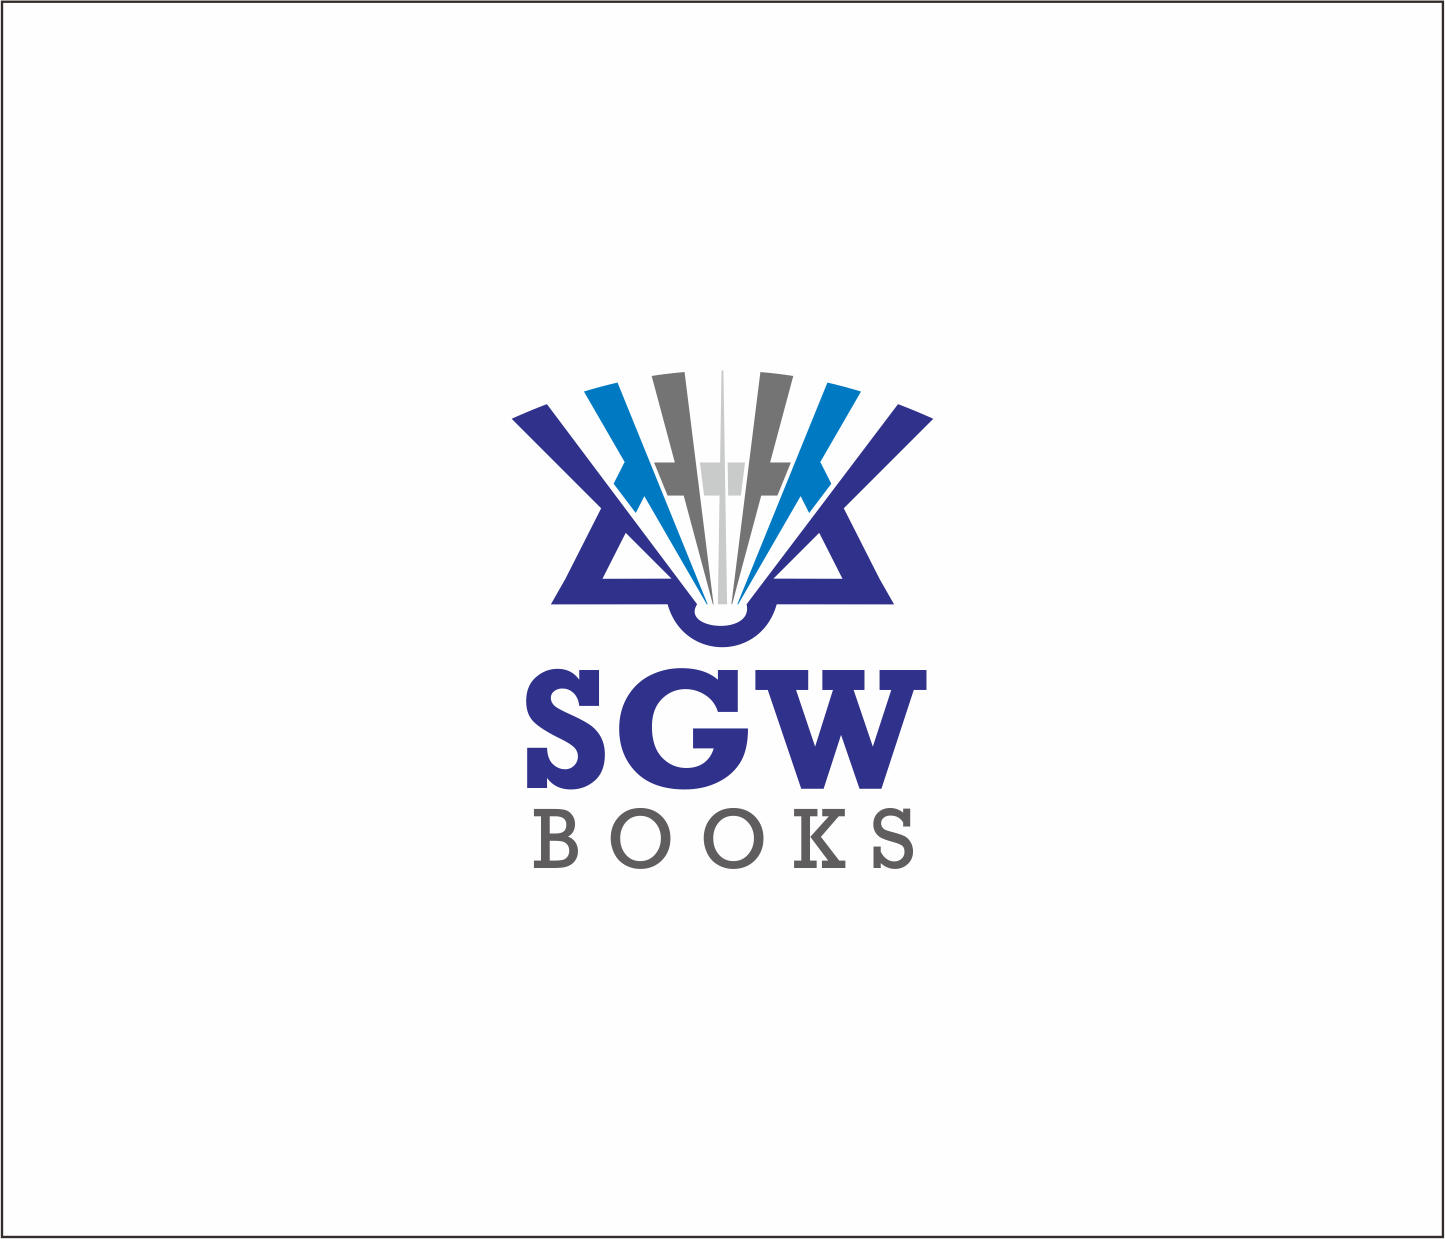 Logo Design by Armada Jamaluddin - Entry No. 75 in the Logo Design Contest SGW Books Logo Design.